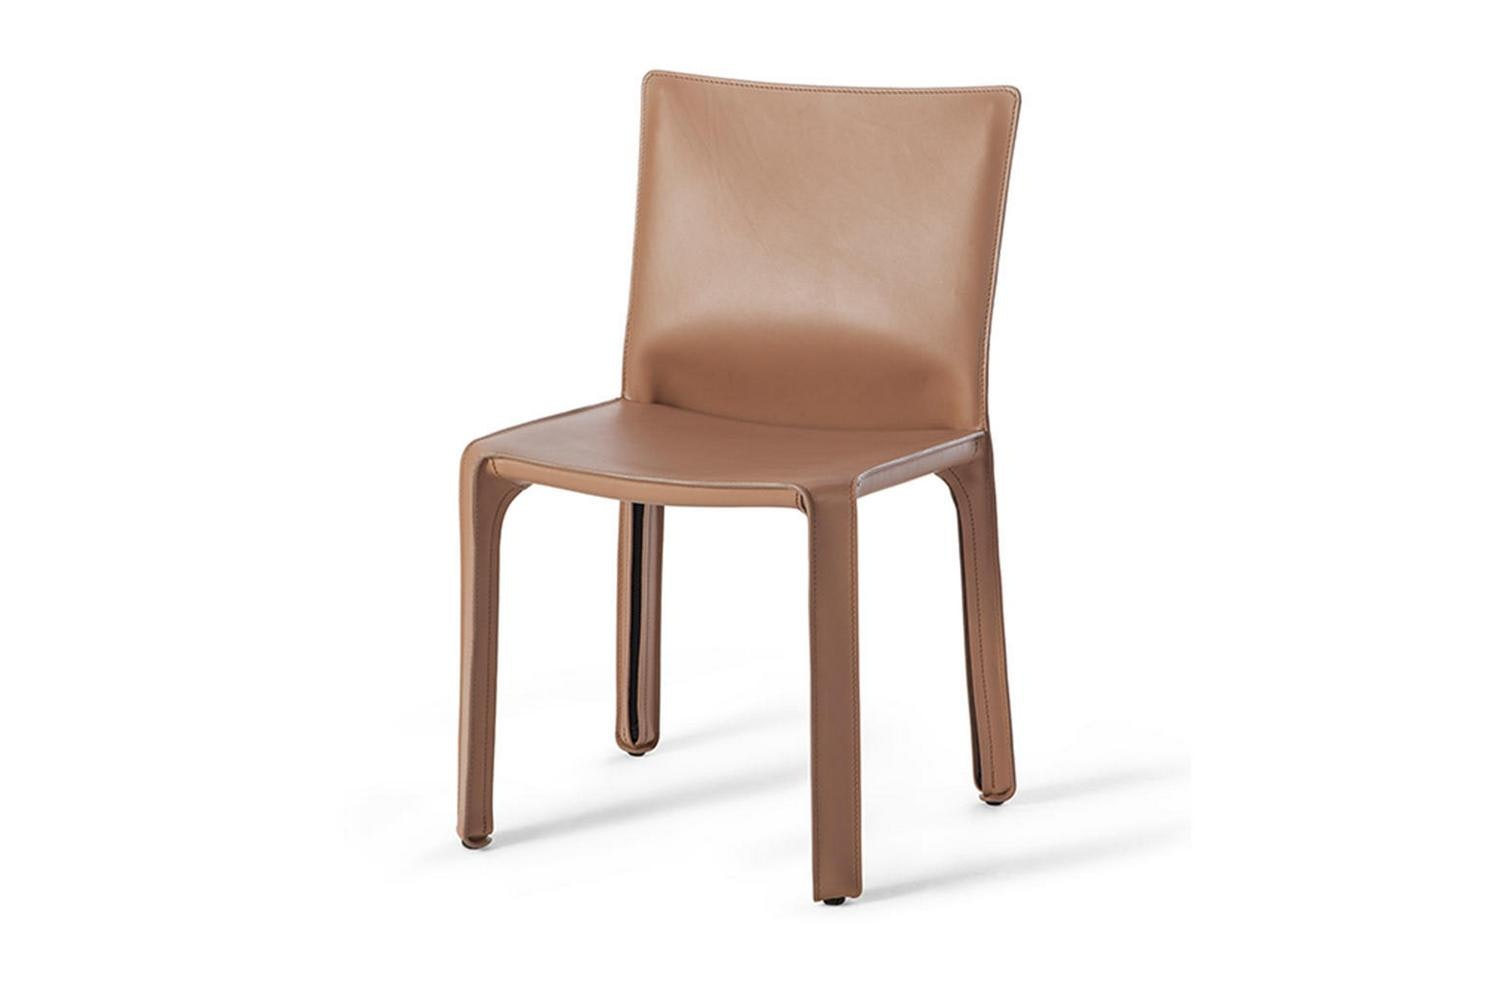 412 Cab Chair by Mario Bellini for Cassina